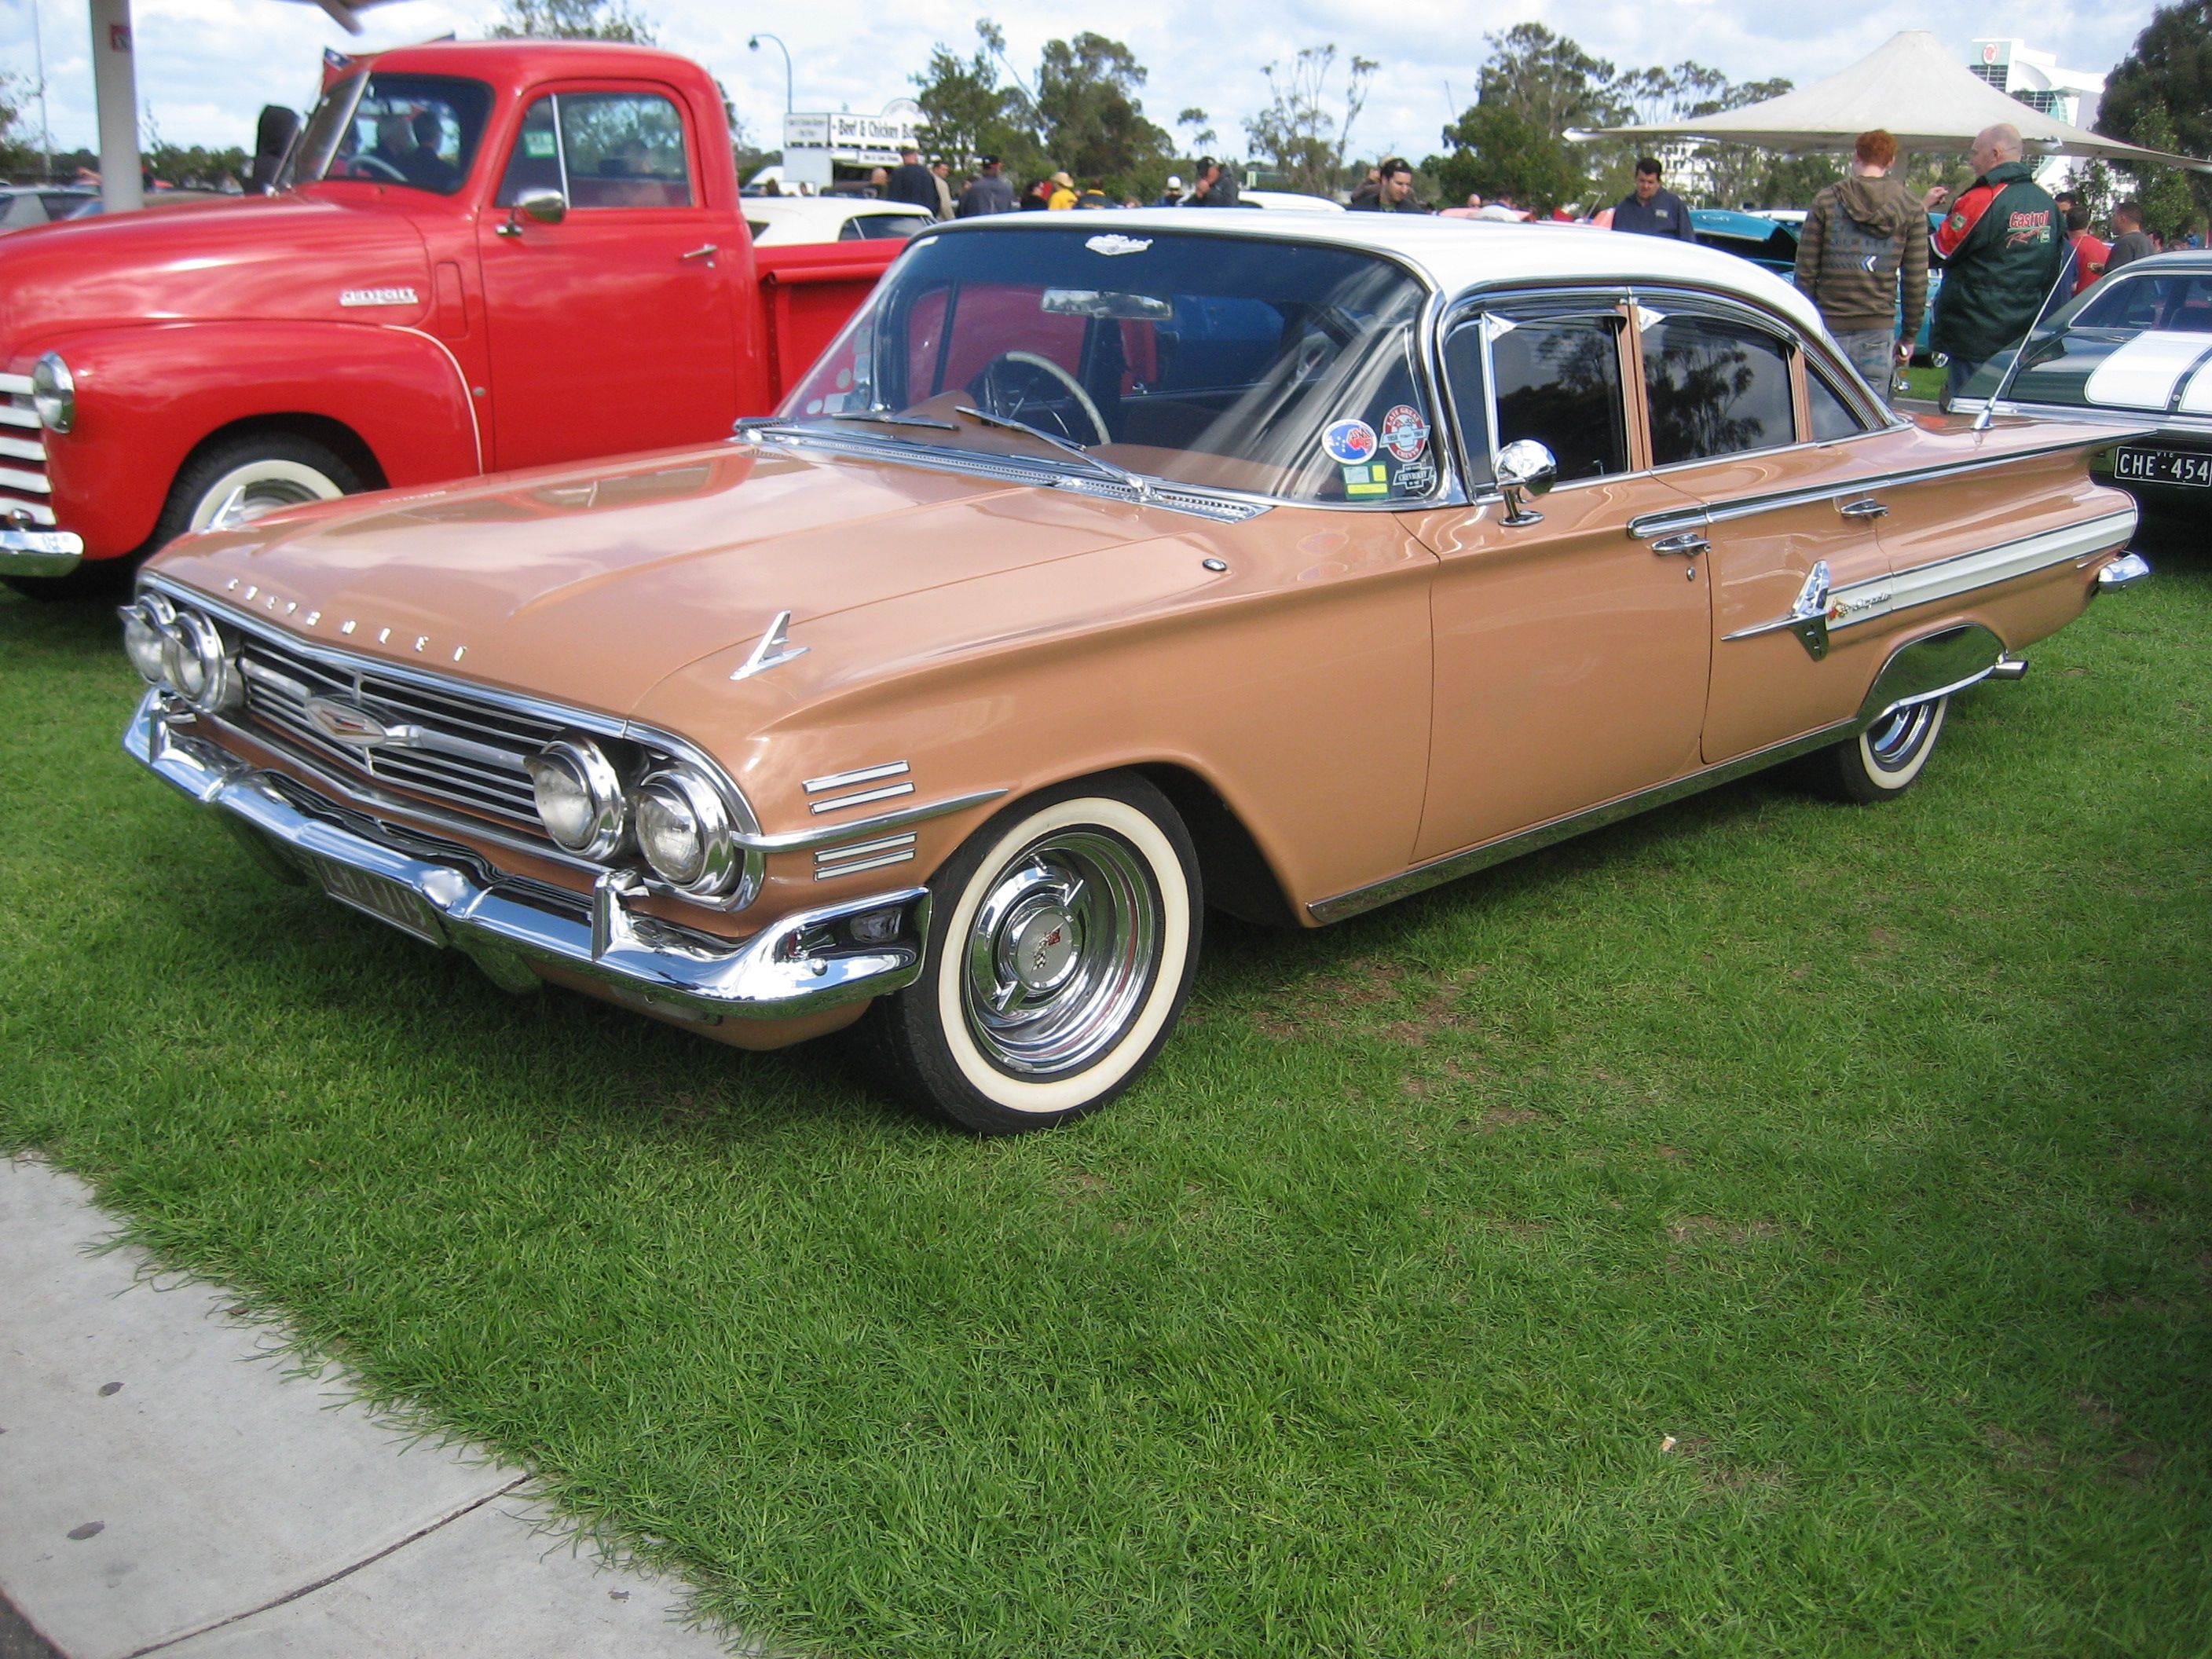 1960 chevy impala rhd appears to have impala 4 door stainless trim added to an